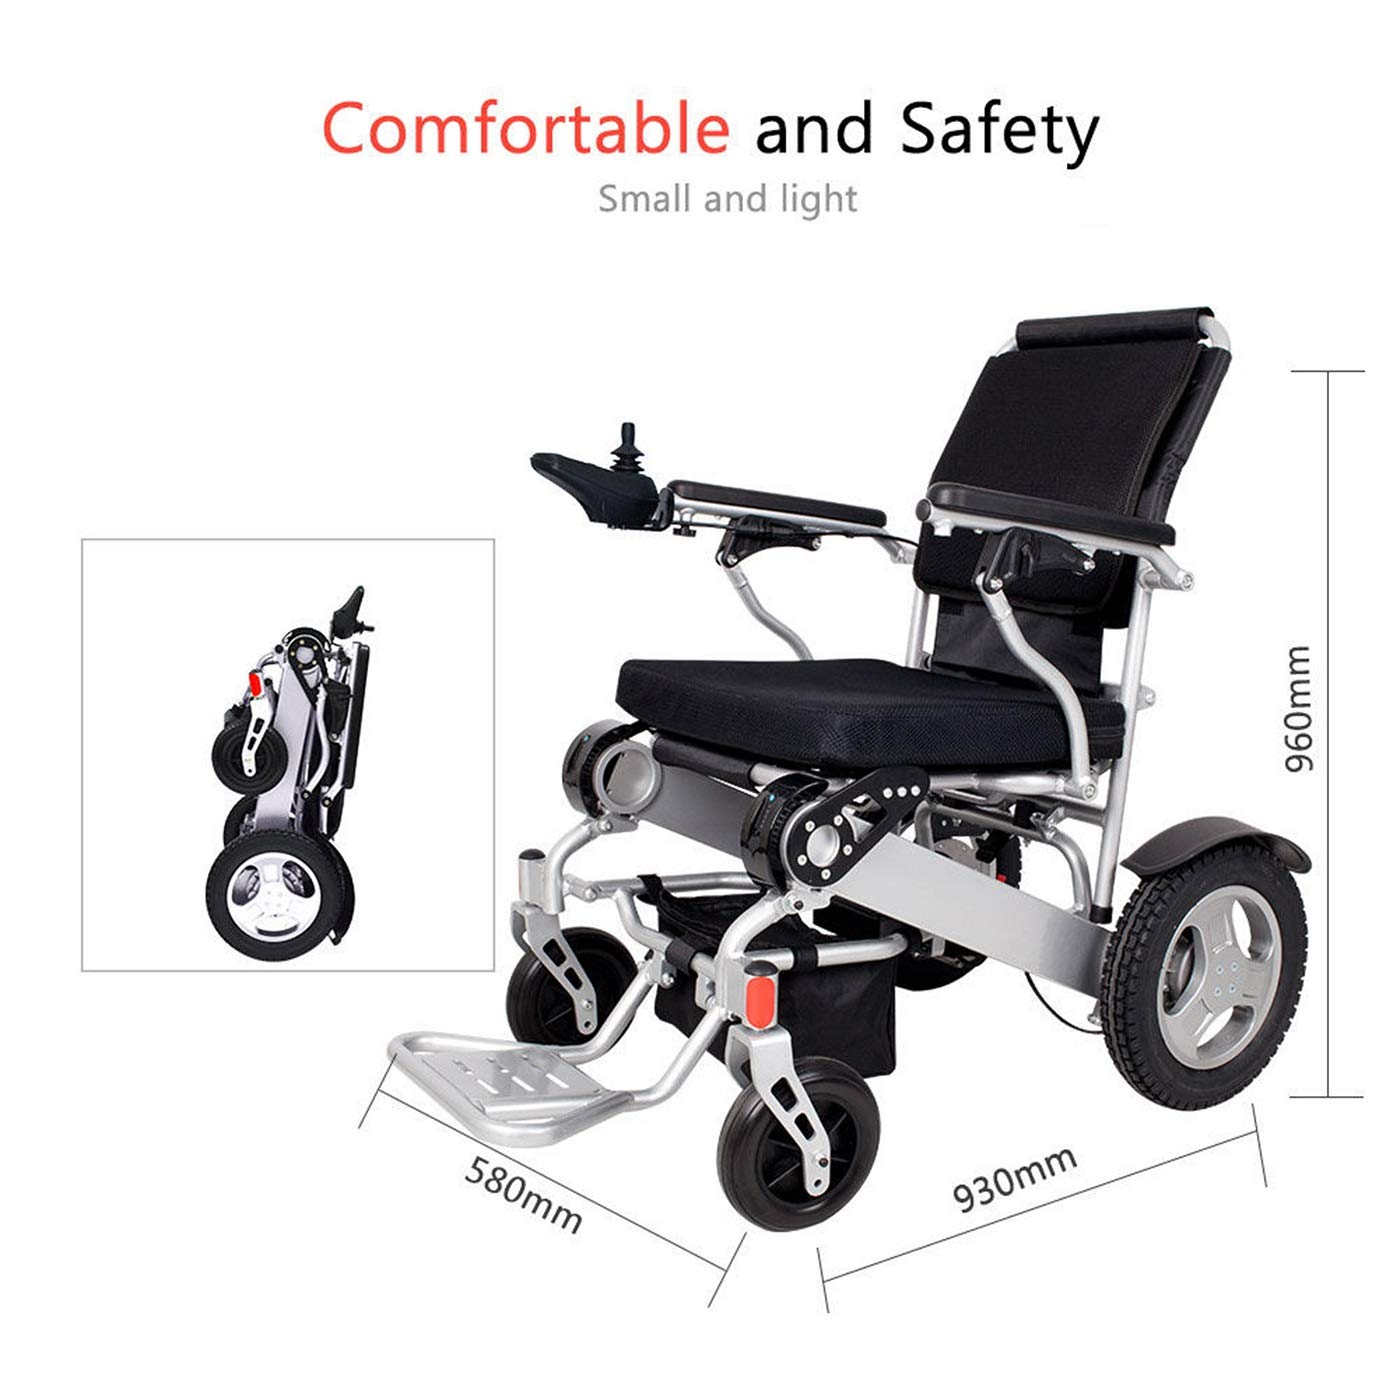 Amazon.com: Electric Wheelchair Folding Lightweight 60 lbs w/Battery Durable Supports 360 lbs Aircraft Grade Aluminum Alloy Frame More Strength New Upgraded ...